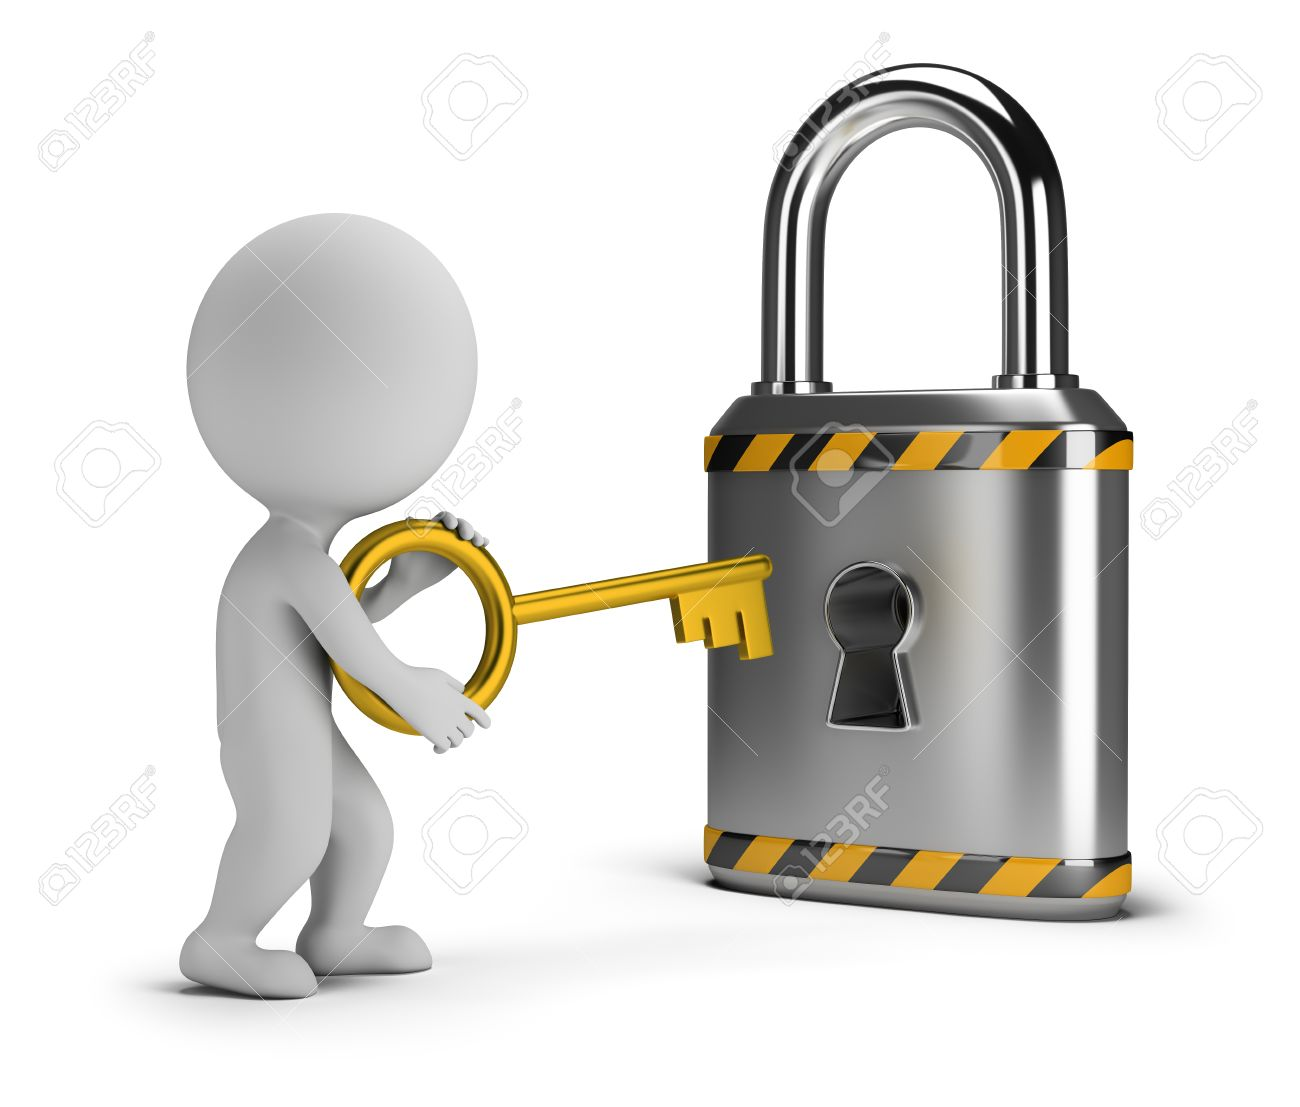 3d small person with a key lock. 3d image. White background. - 61289187